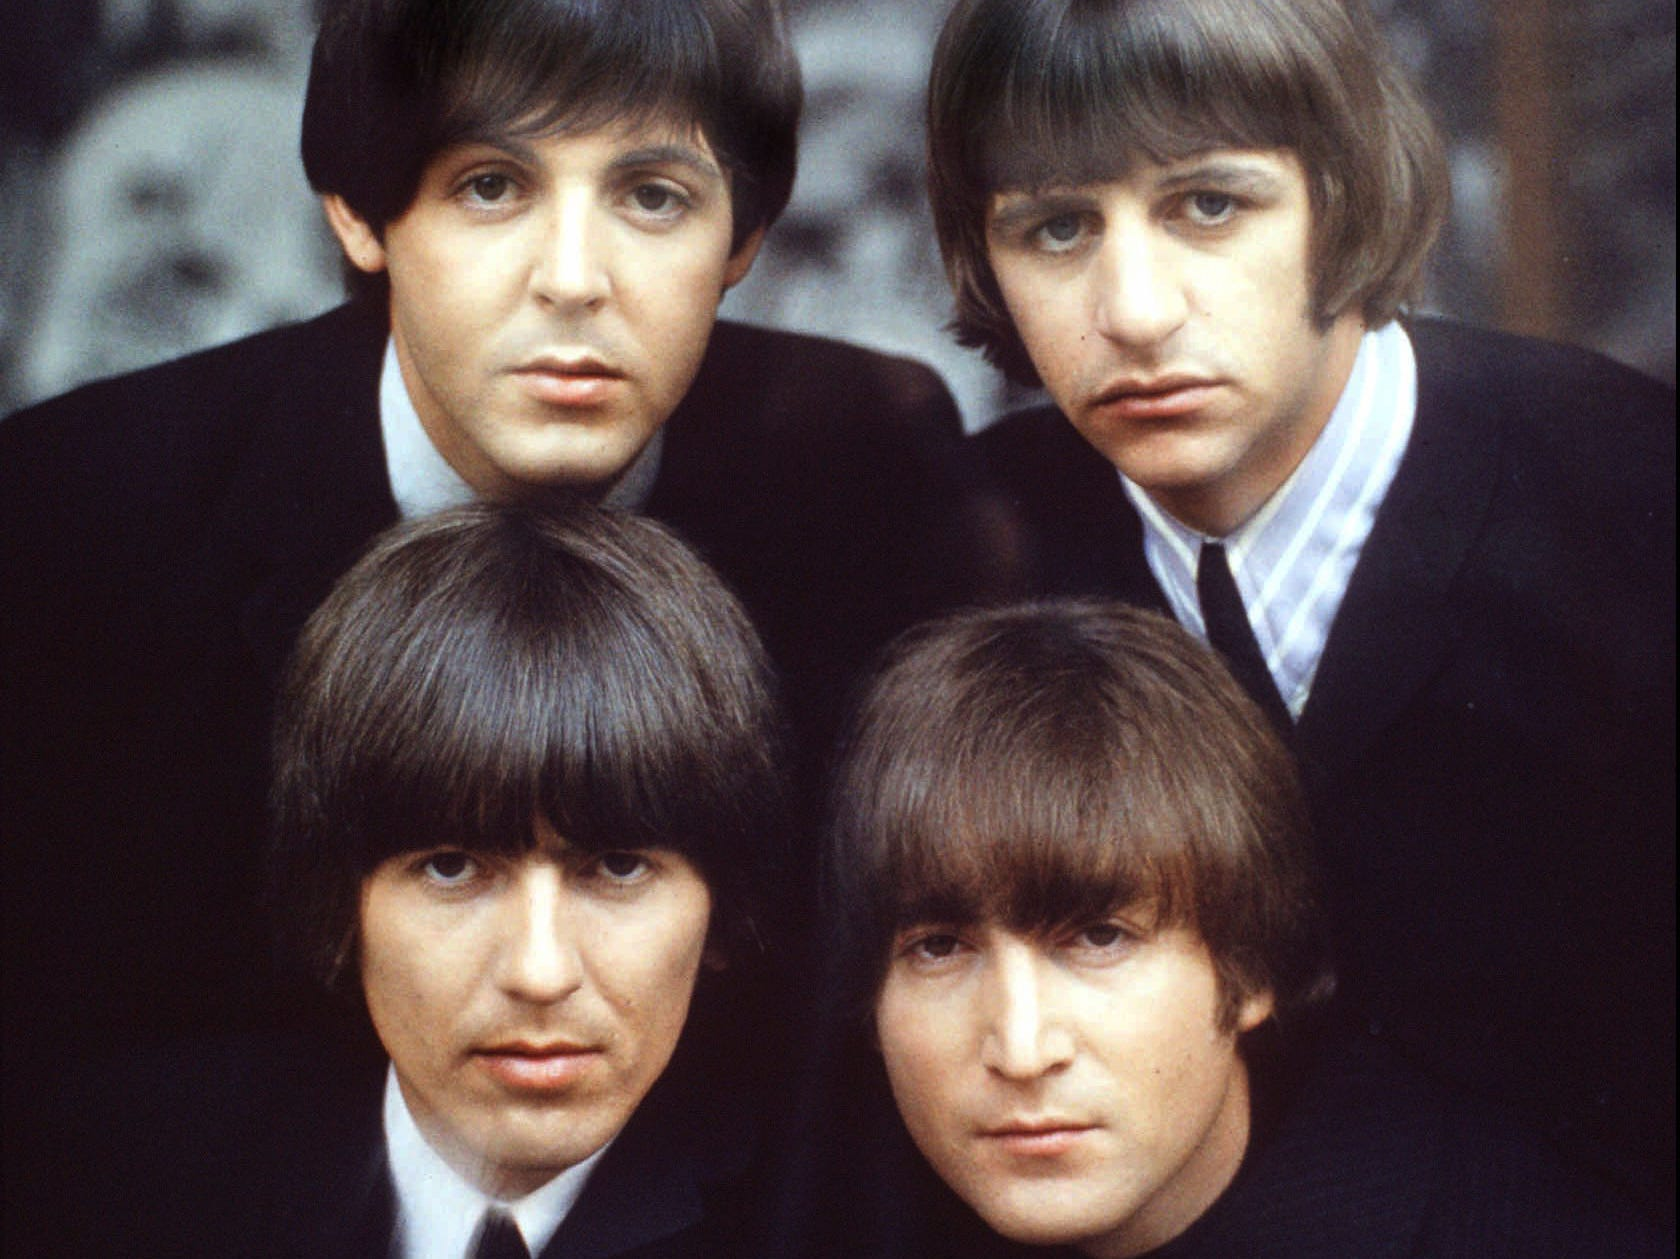 134.5 million | Albums sold. His U.S. sales are second only to The Beatles, who have sold 177 million.